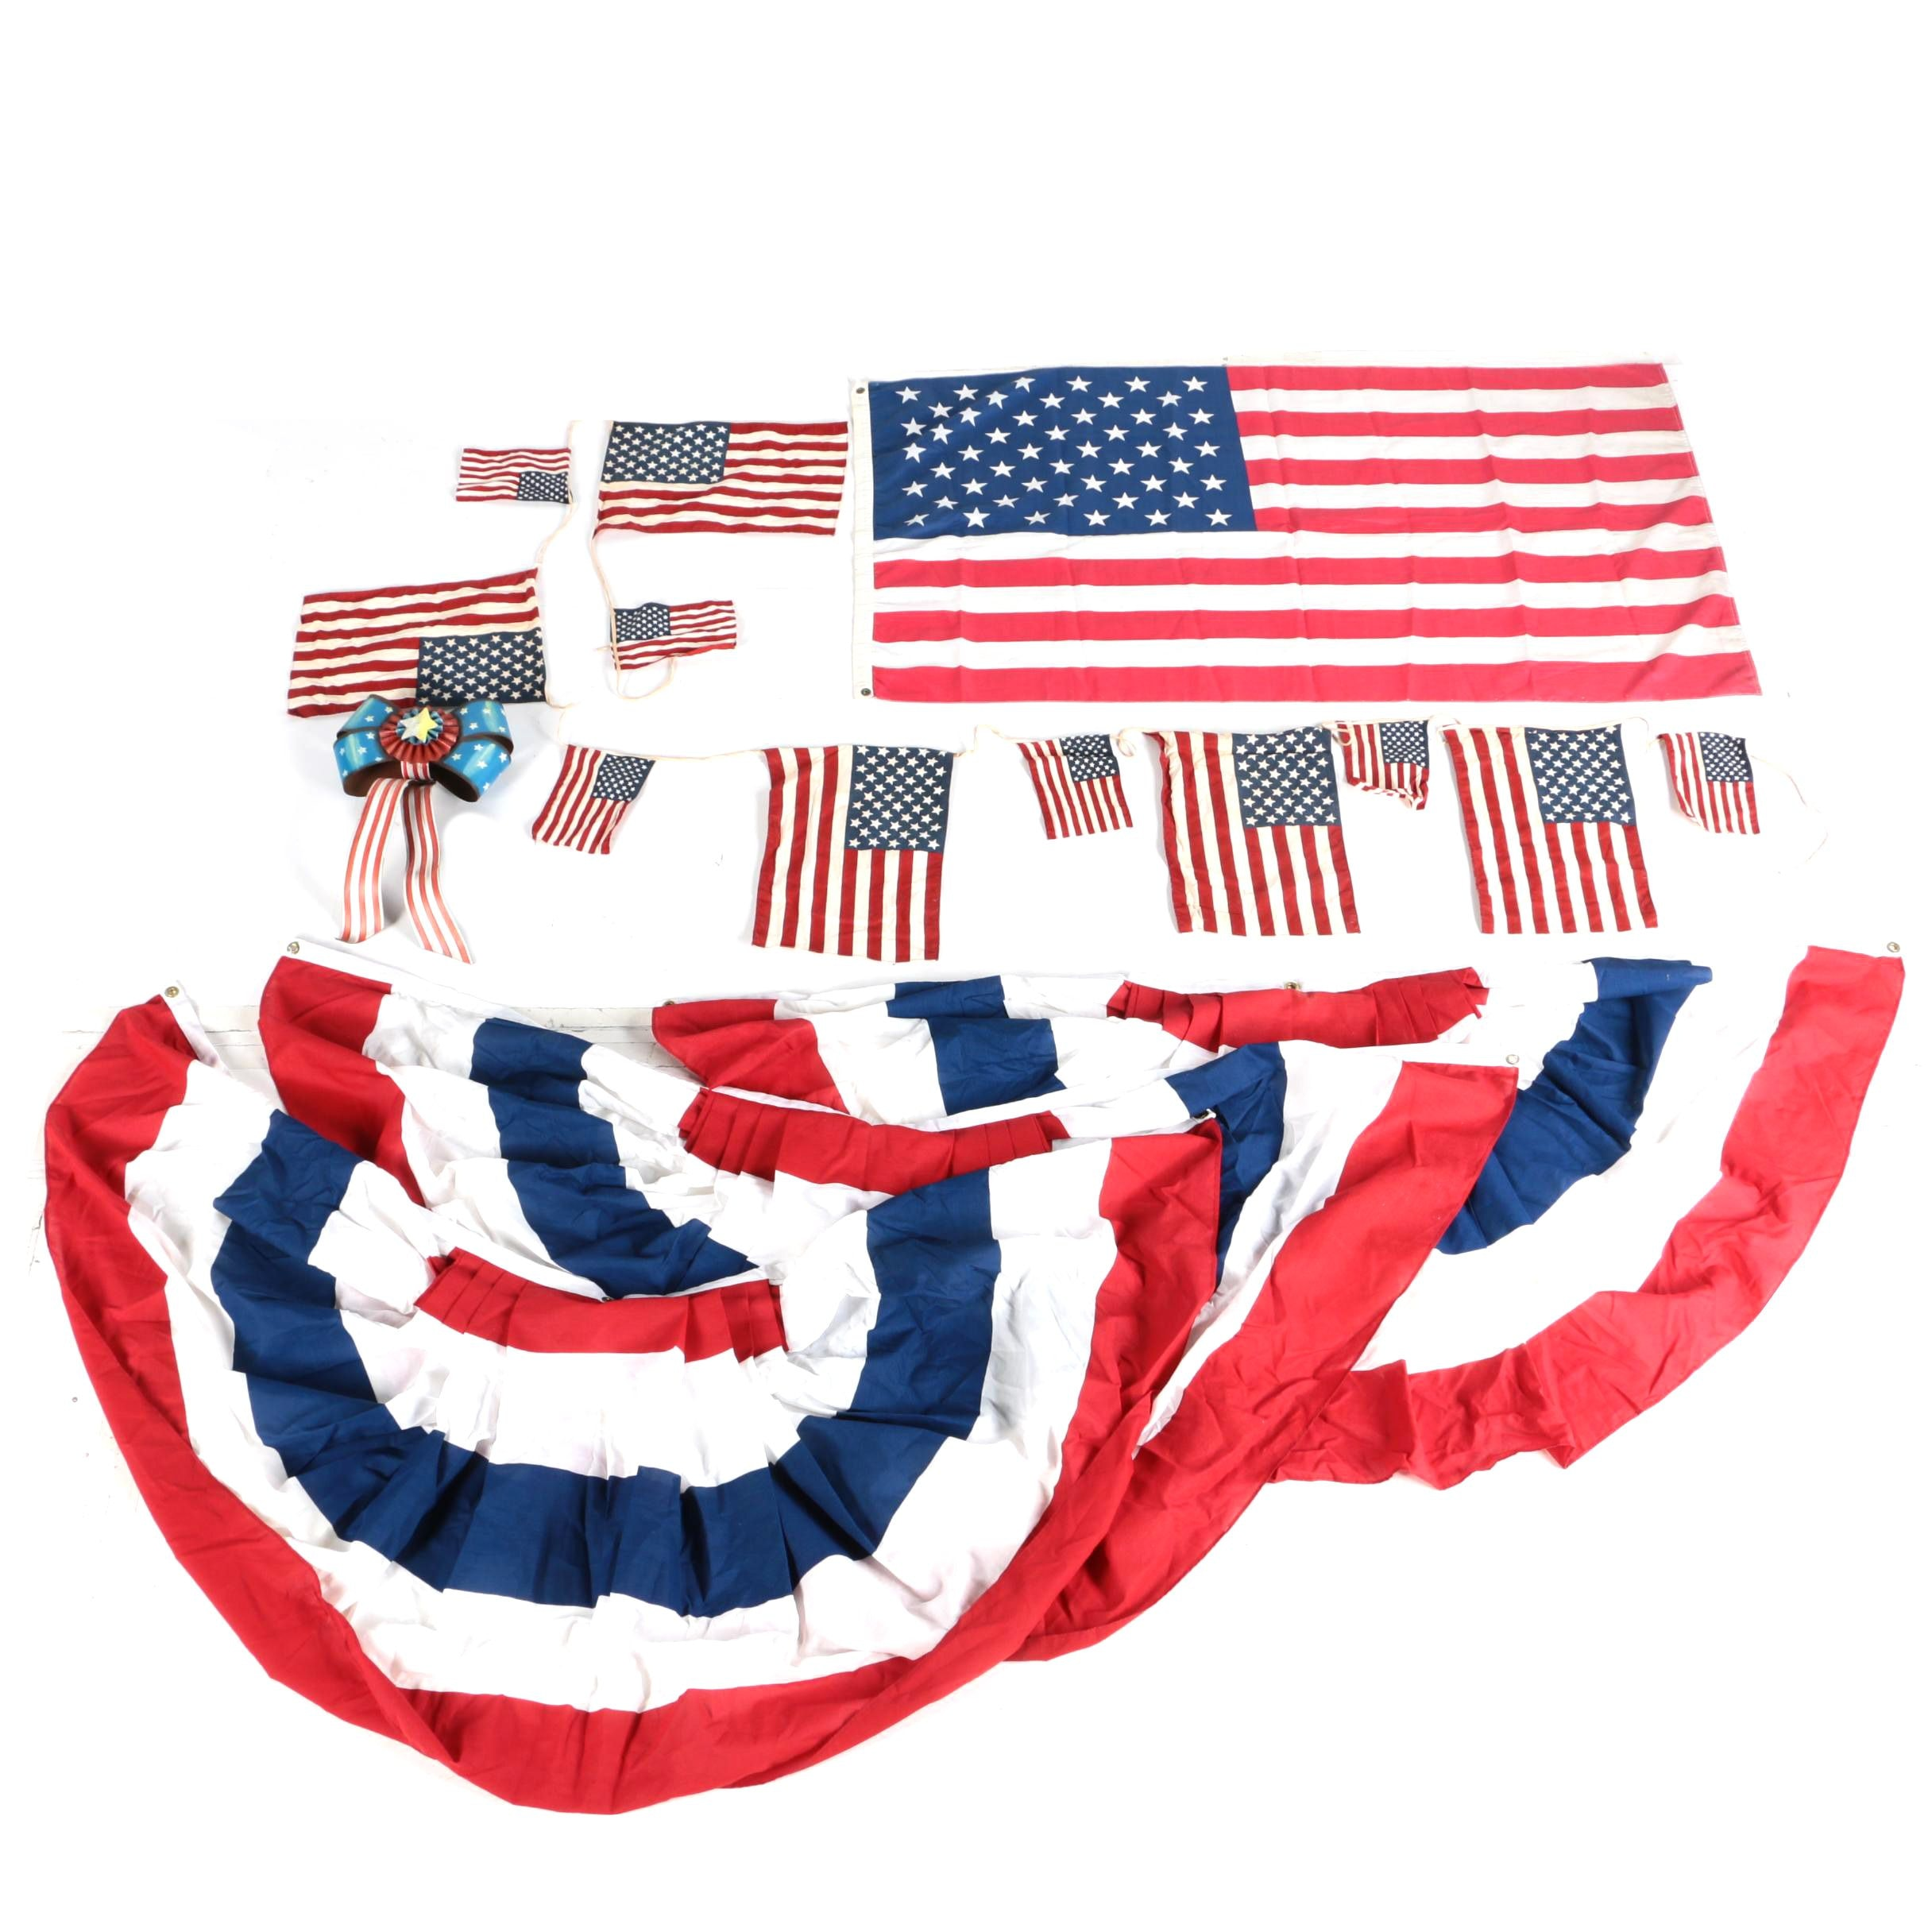 Assorted Patriotic Banners and American Flags